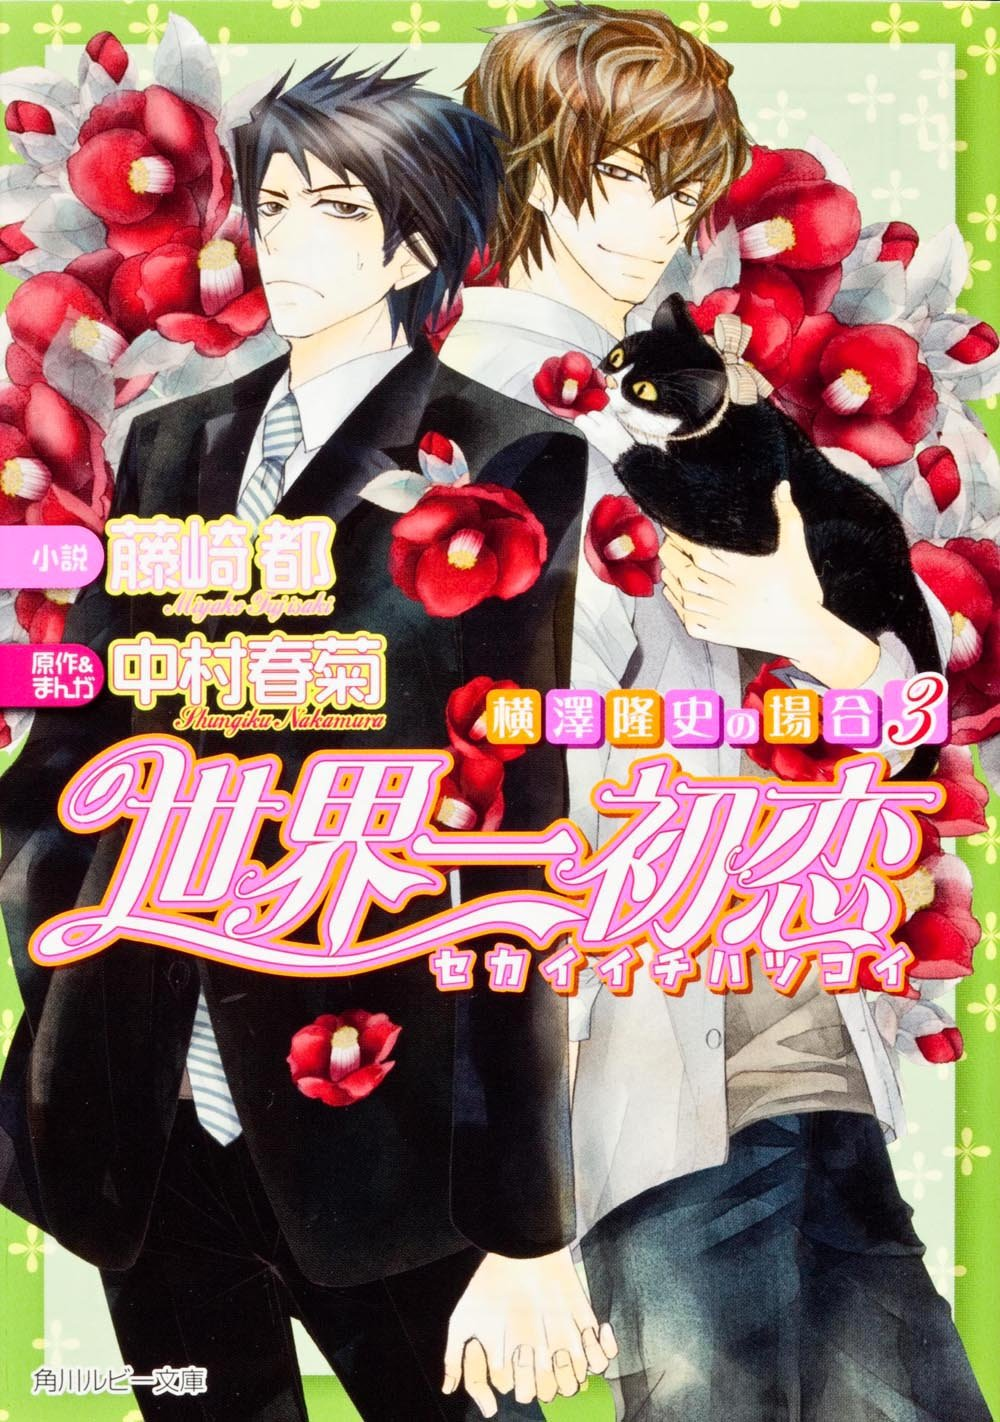 Download Sekai Ichi Hatsukoi - Yokozawa Takafumi No Baai [In Japanese] [Japanese Edition] Vol.3 pdf epub